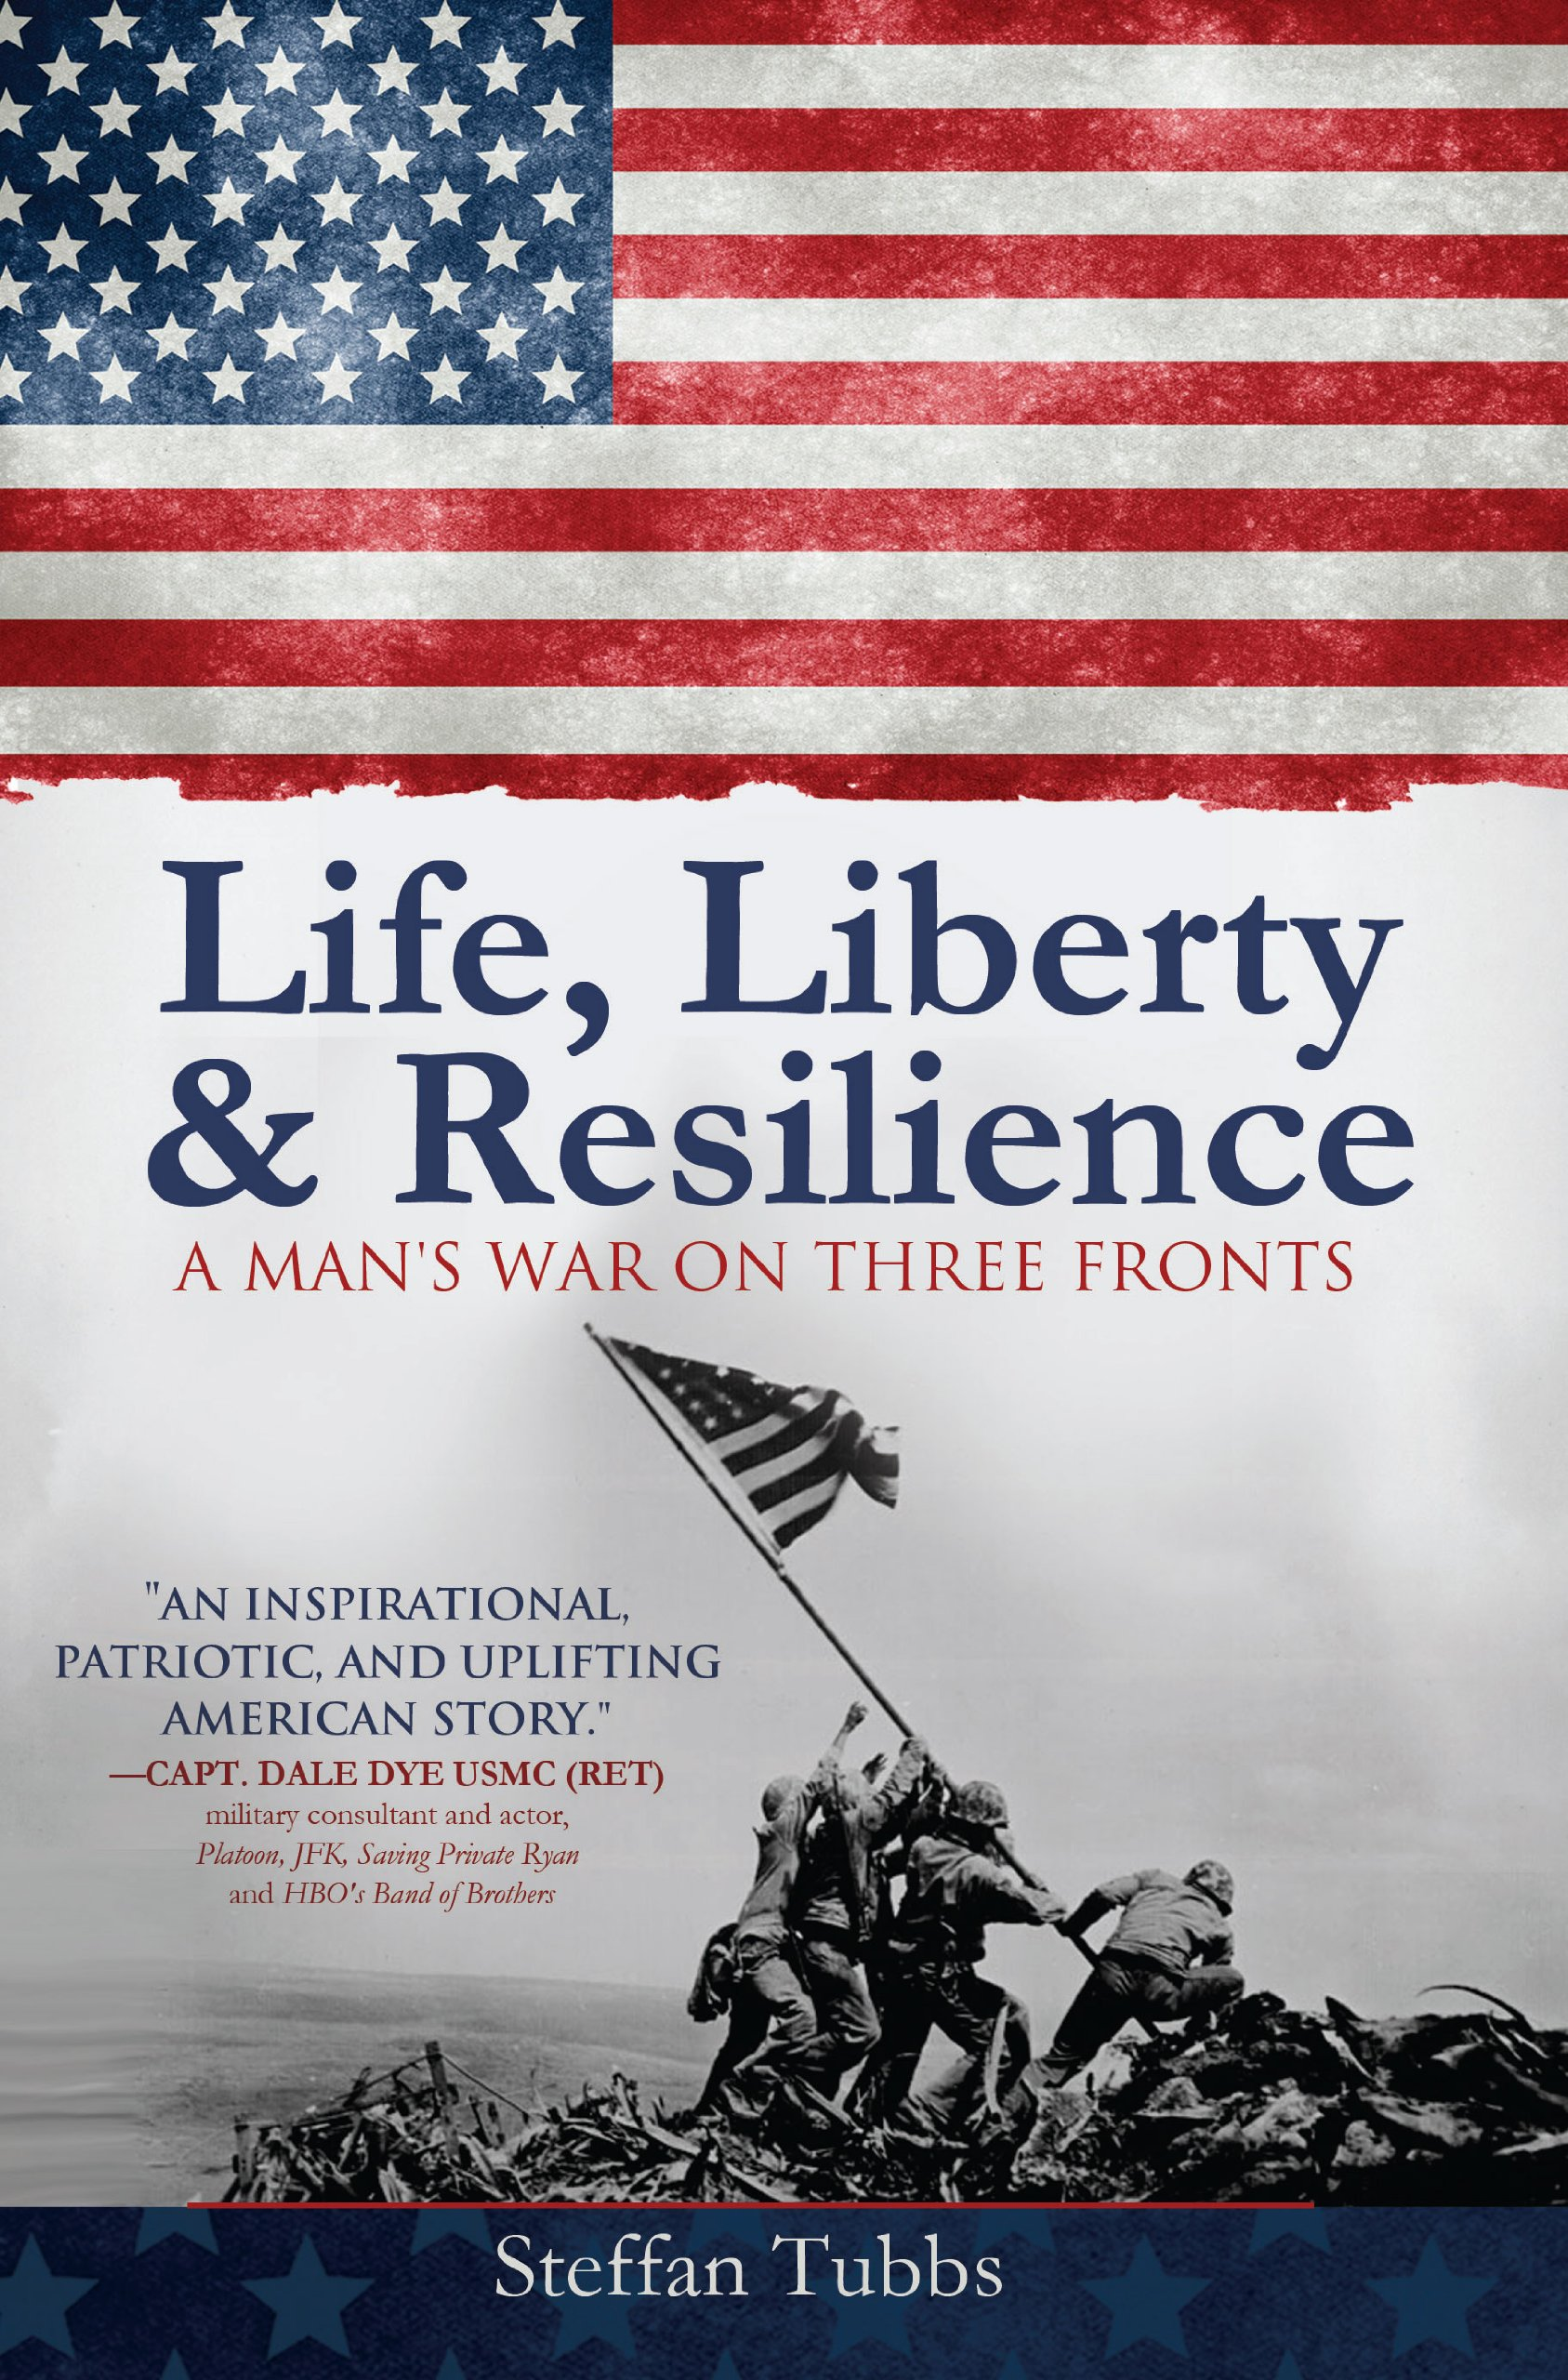 Download Life, Liberty & Resilience A Man's War On Three Fronts pdf epub